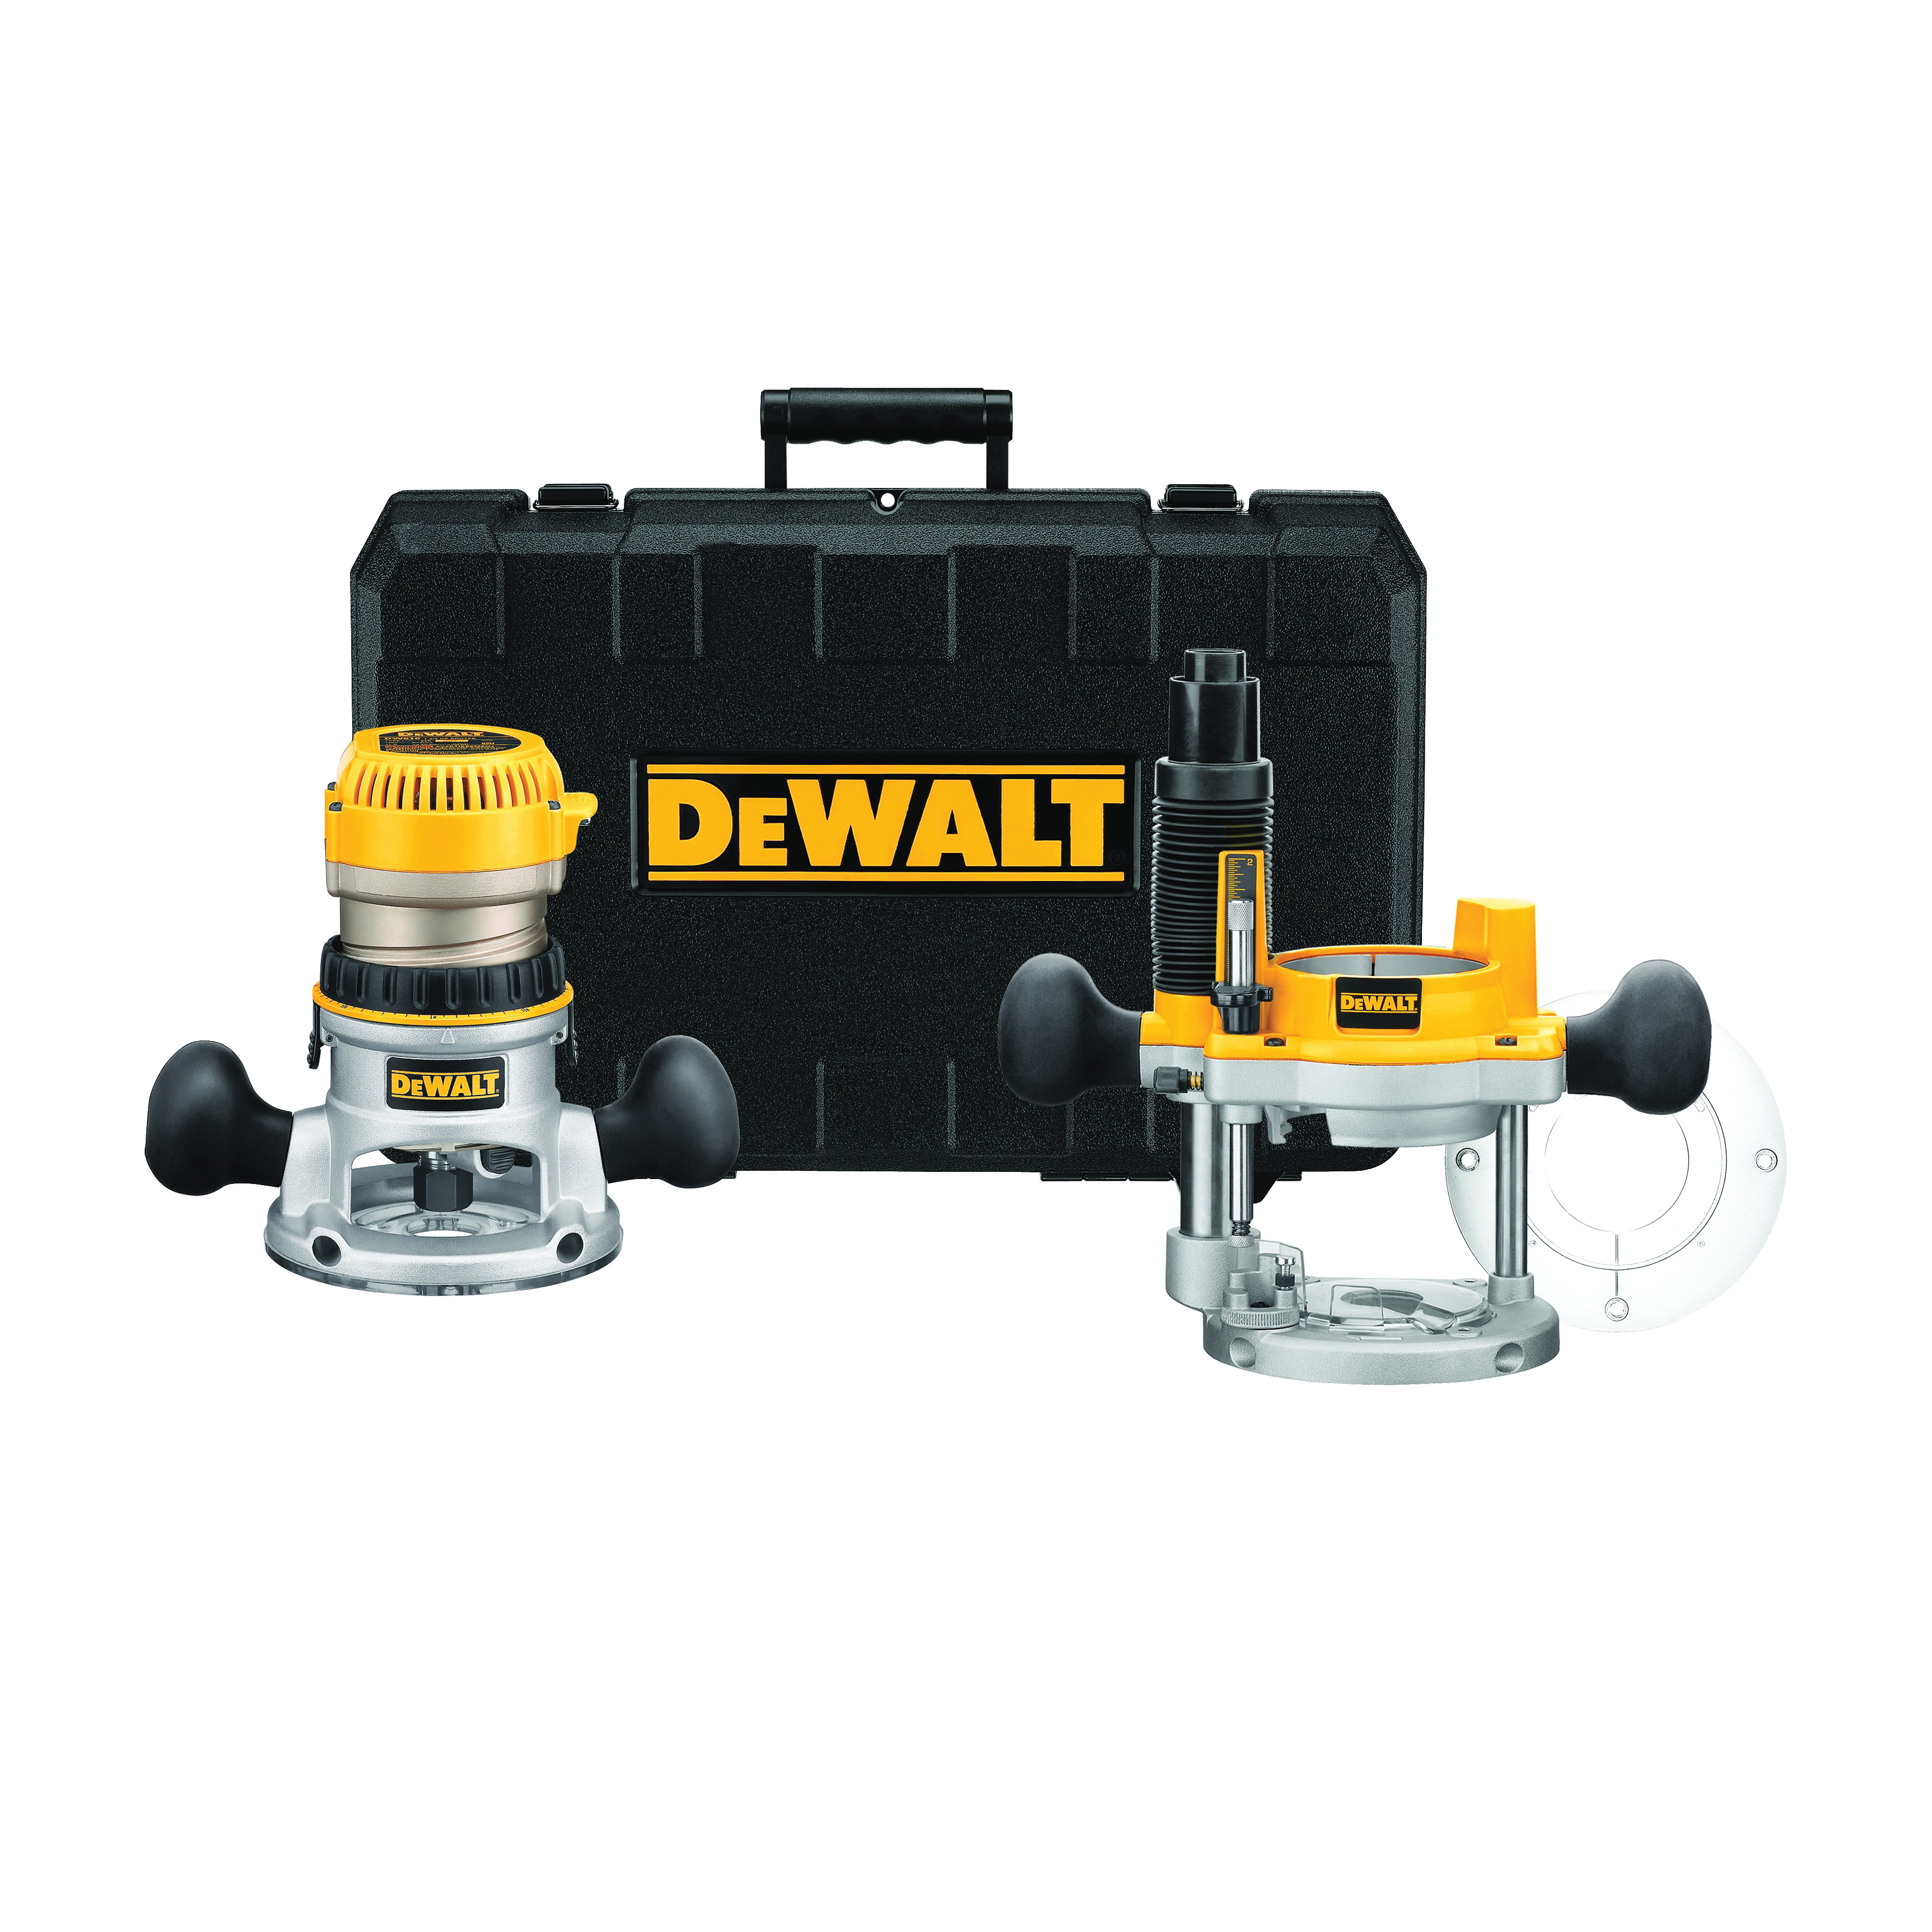 DeWALT® DW618PK EVS Mid Size Soft Start Fixed Base/Plunge Router Combo Kit, 1/4 in, 1/2 in Chuck, 8000 to 24000 rpm, 2.25 hp, 120 VAC, Toggle Switch